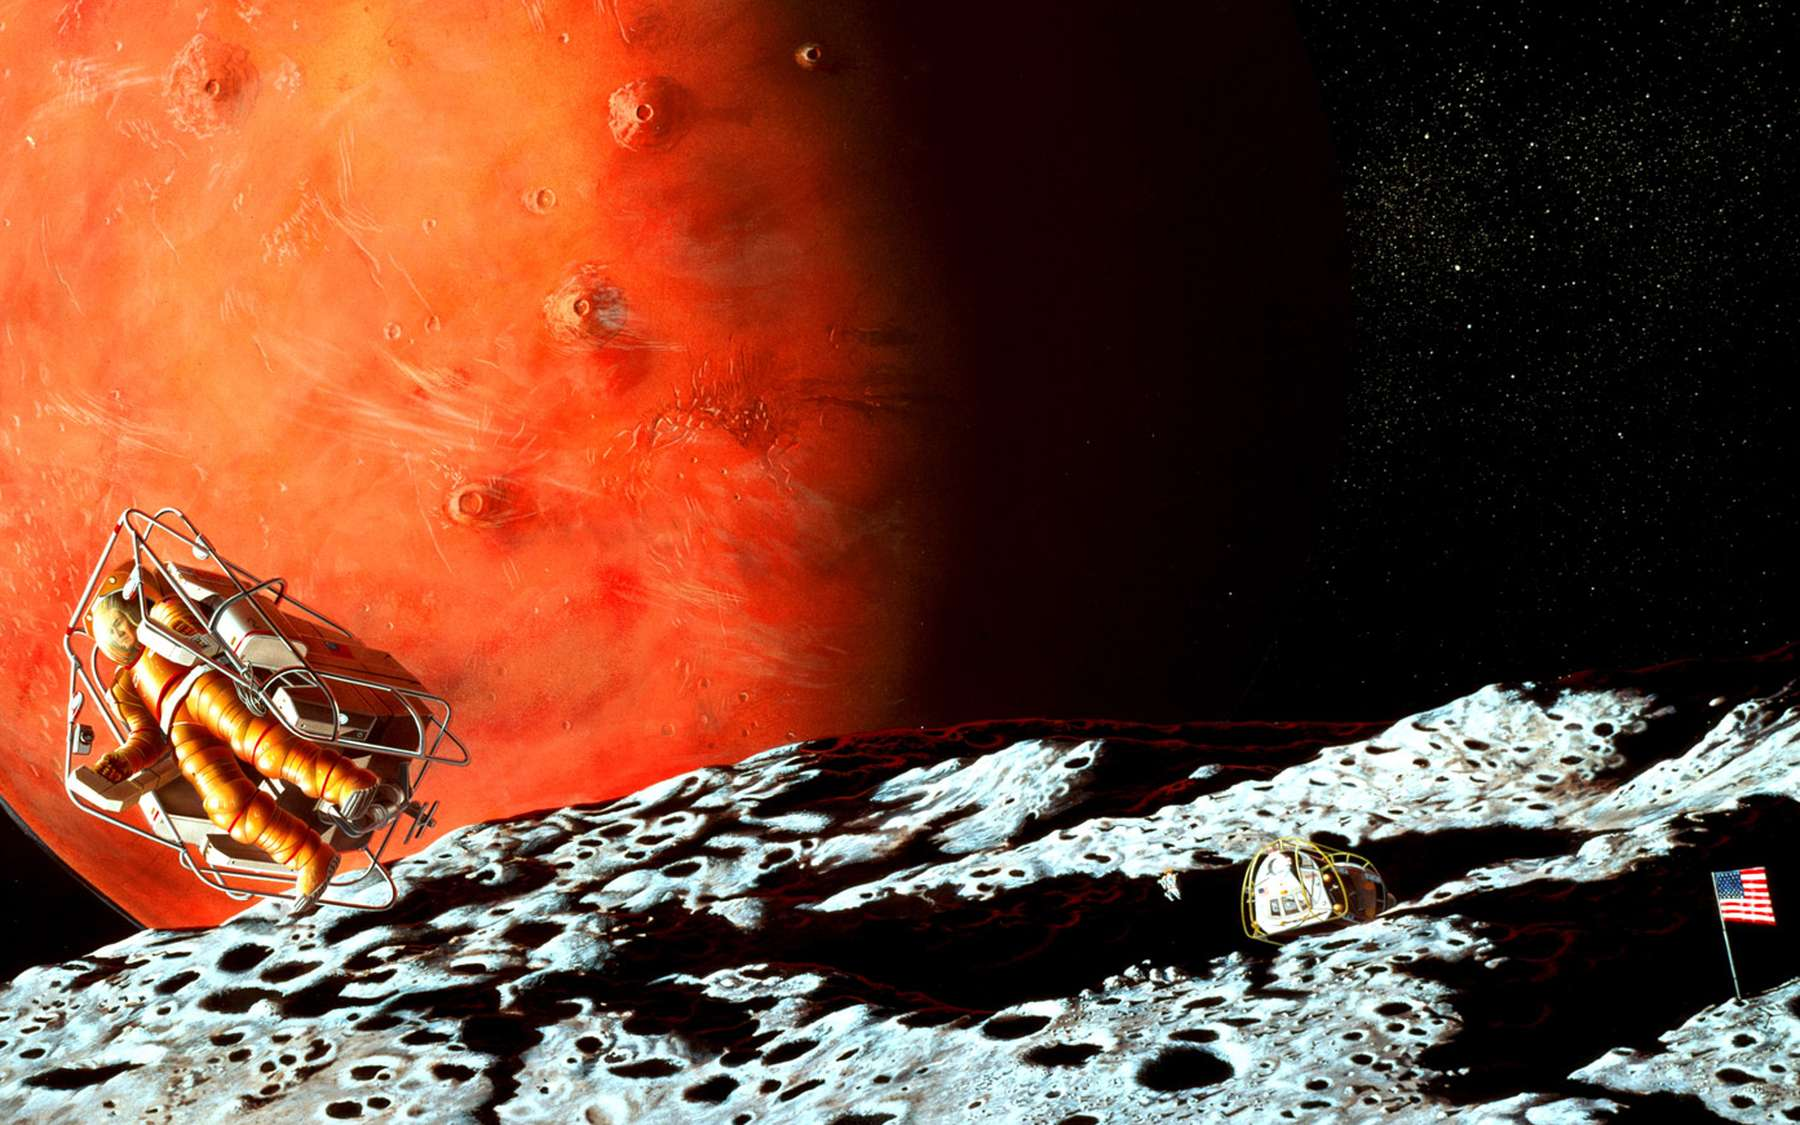 Two astronauts explore the rugged surface of Phobos. Mars, as it would appear to the human eye from Phobos, looms on the horizon. The mother ship, powered by solar energy, orbits Mars while two crew members inside remotely operate rovers on the Martian surface. - Image Credit: NASA/Pat Rawlings (SAIC)